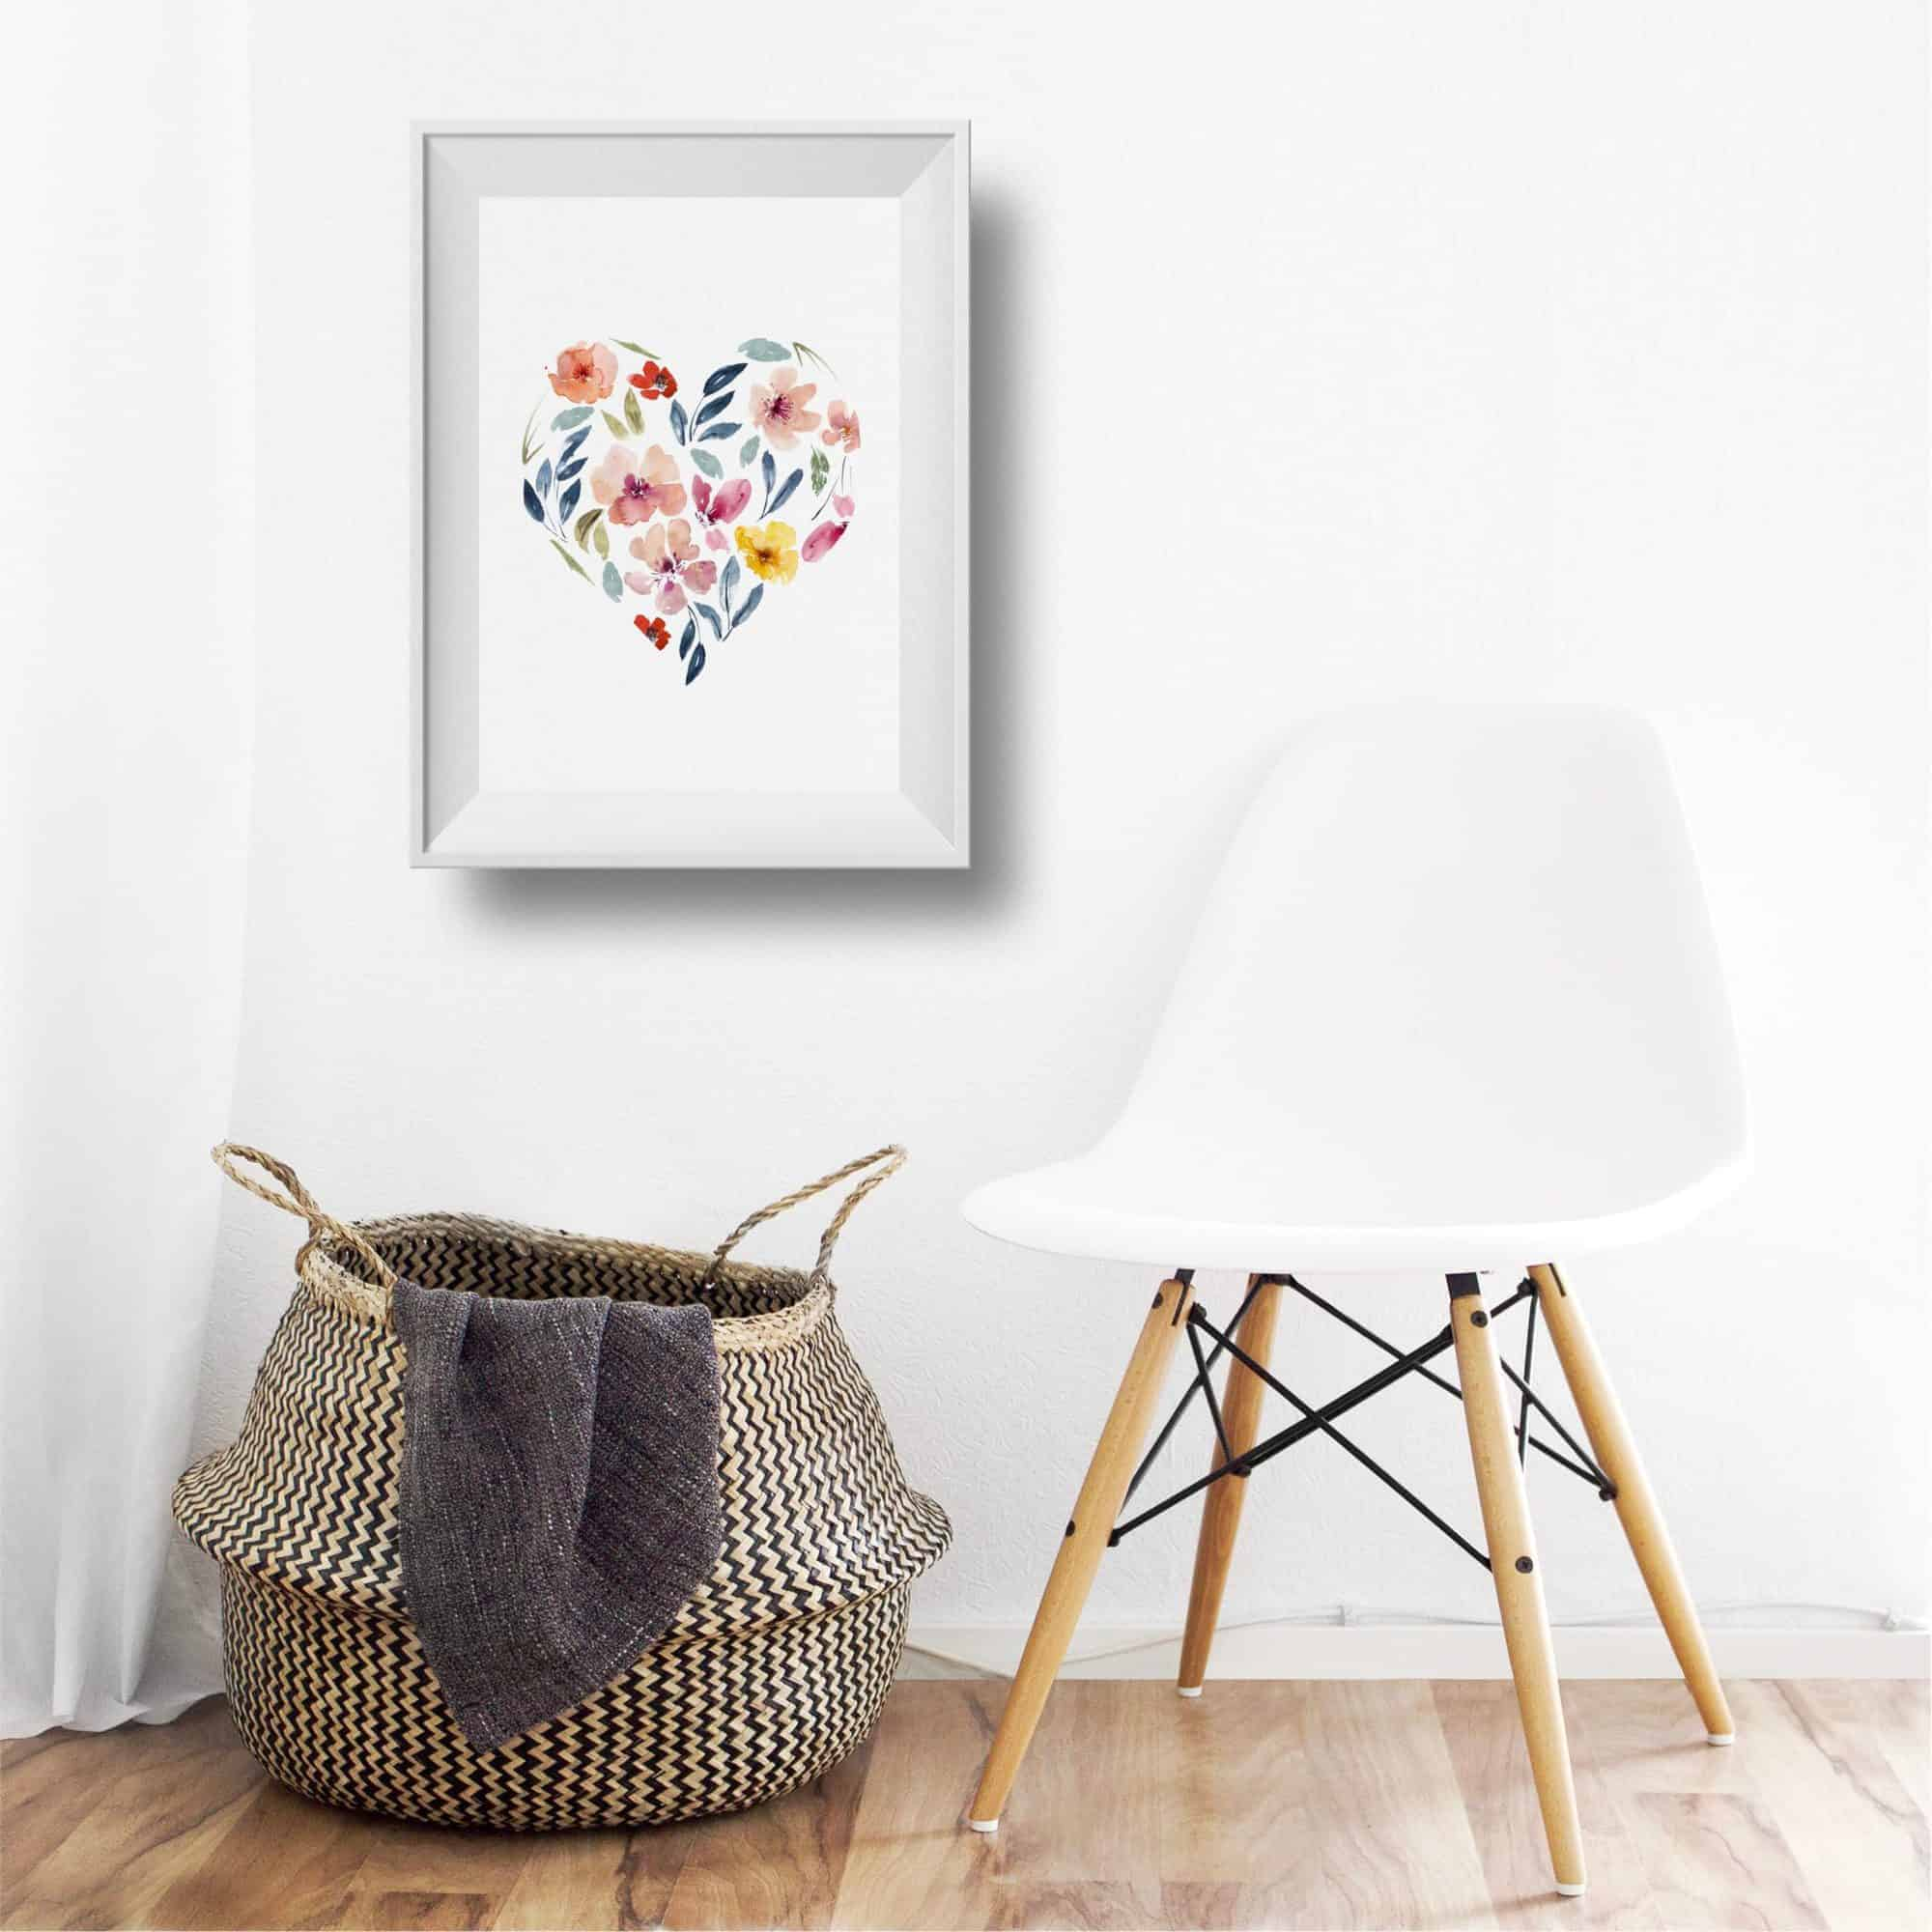 Free Watercolor Print by Sammy Zoe Illustration